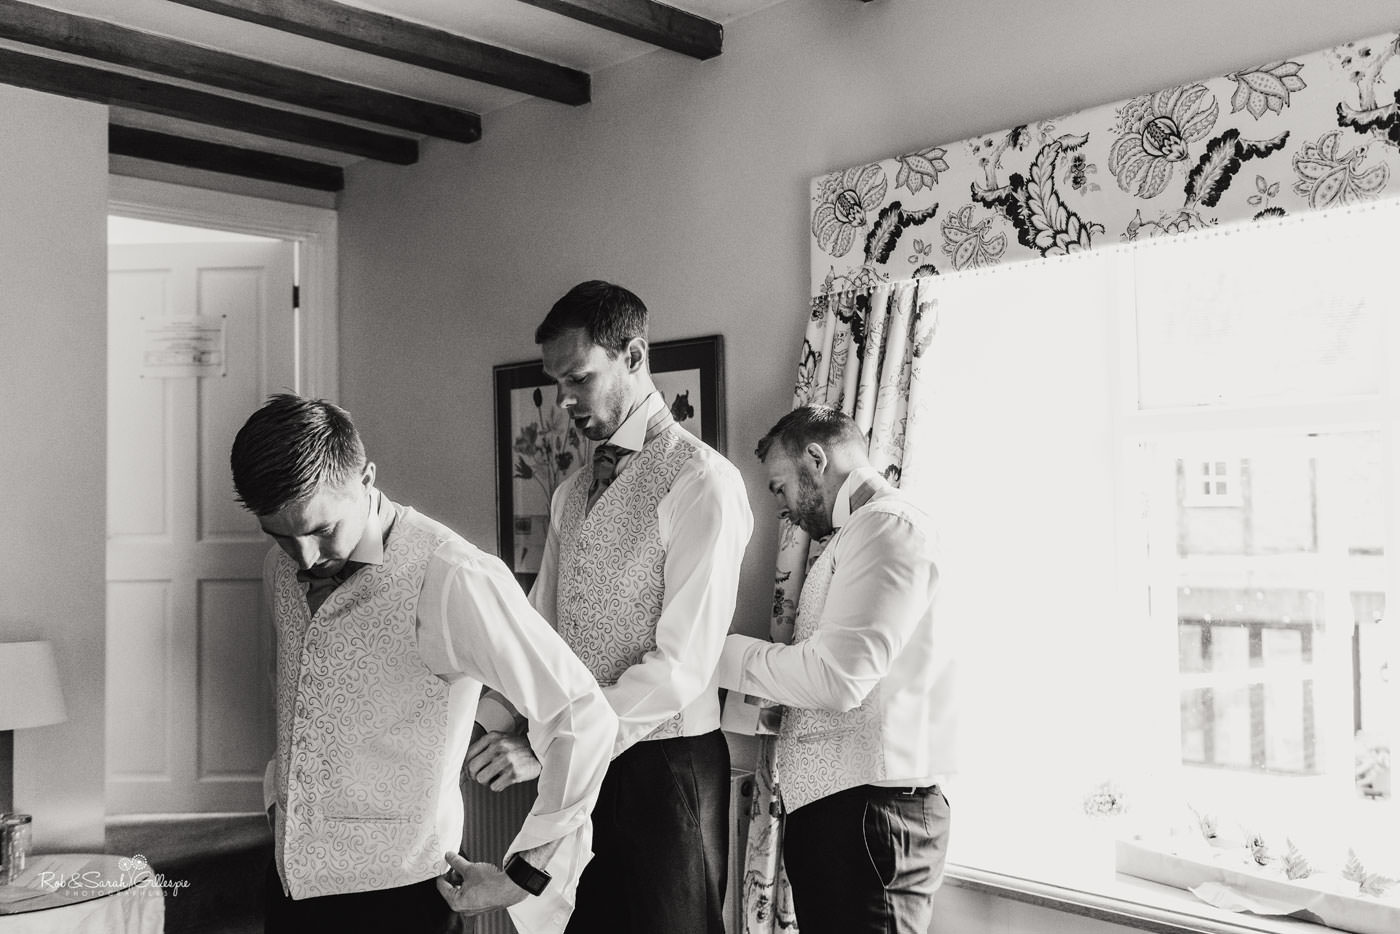 Groom and friends prepare for wedding at Delbury Hall in Shropshire